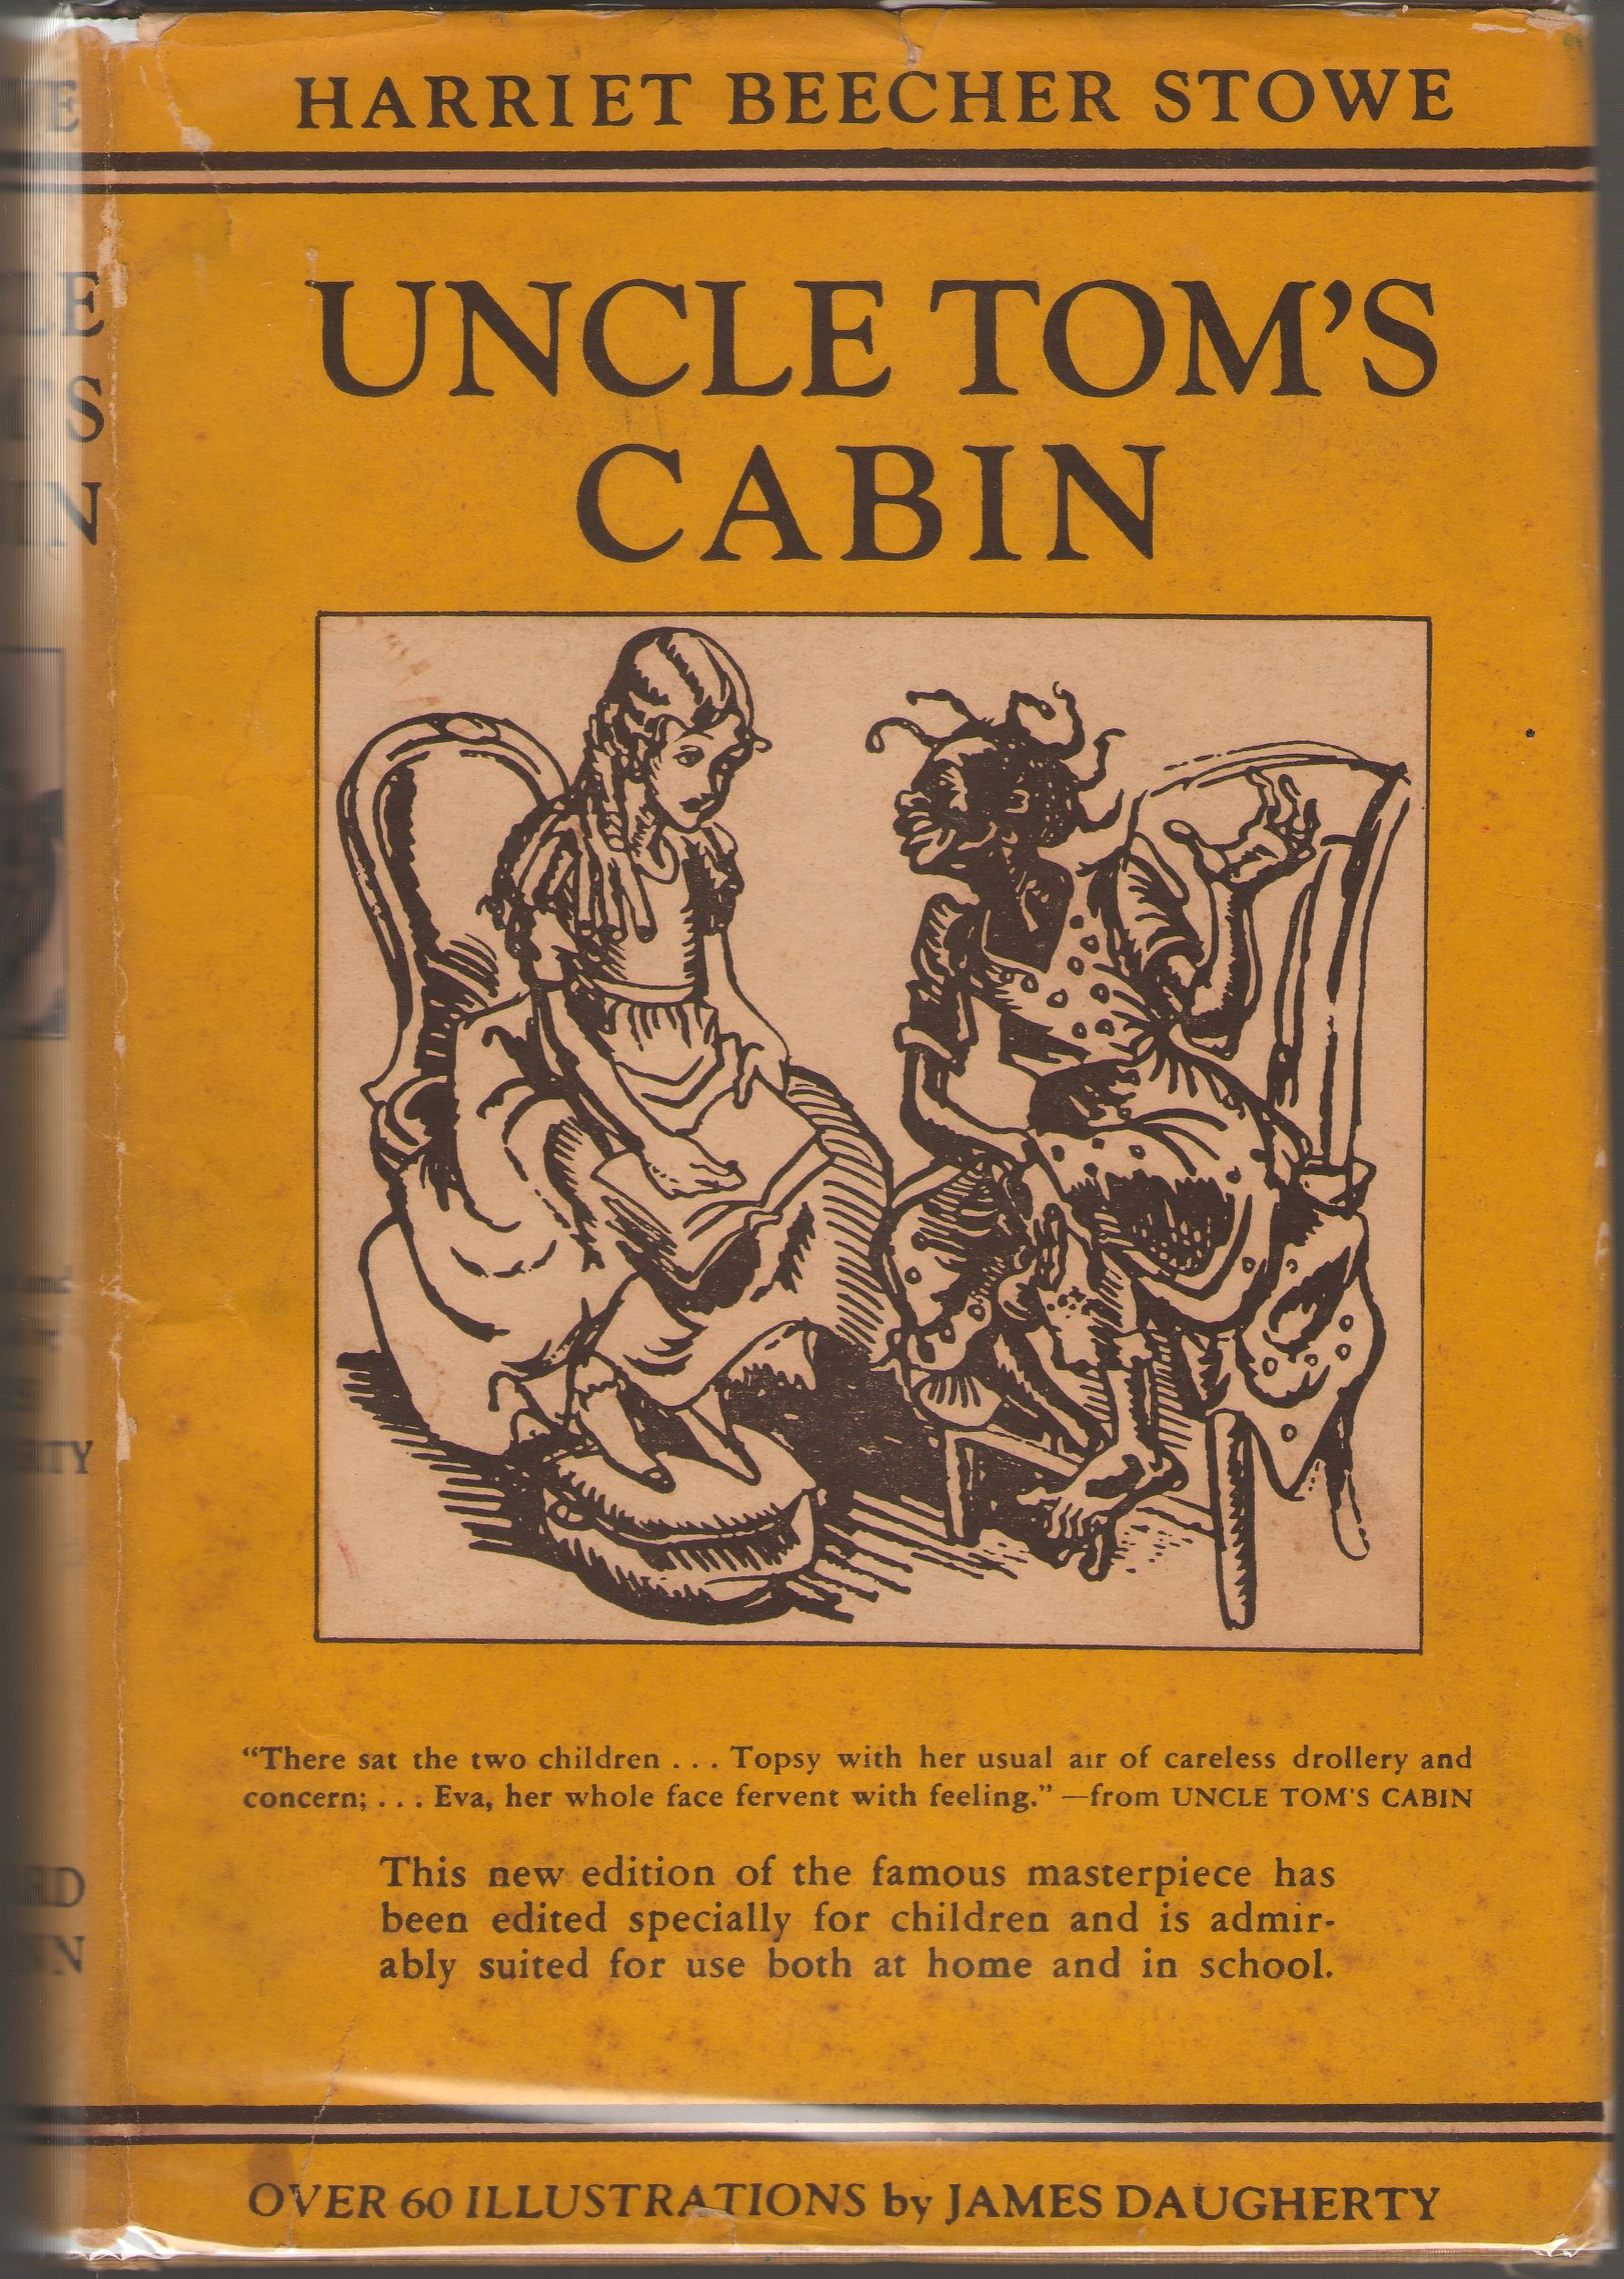 uncle toms cabin by harriet beecher Uncle tom's cabin [harriet beecher stowe] on amazoncom free shipping on qualifying offers when uncle tom's cabin was published in 1852 it caused a sensation its antislavery position proved to be one the most powerful cultural influences behind the civil war by emphasizing the moral failure inherent in slavery.